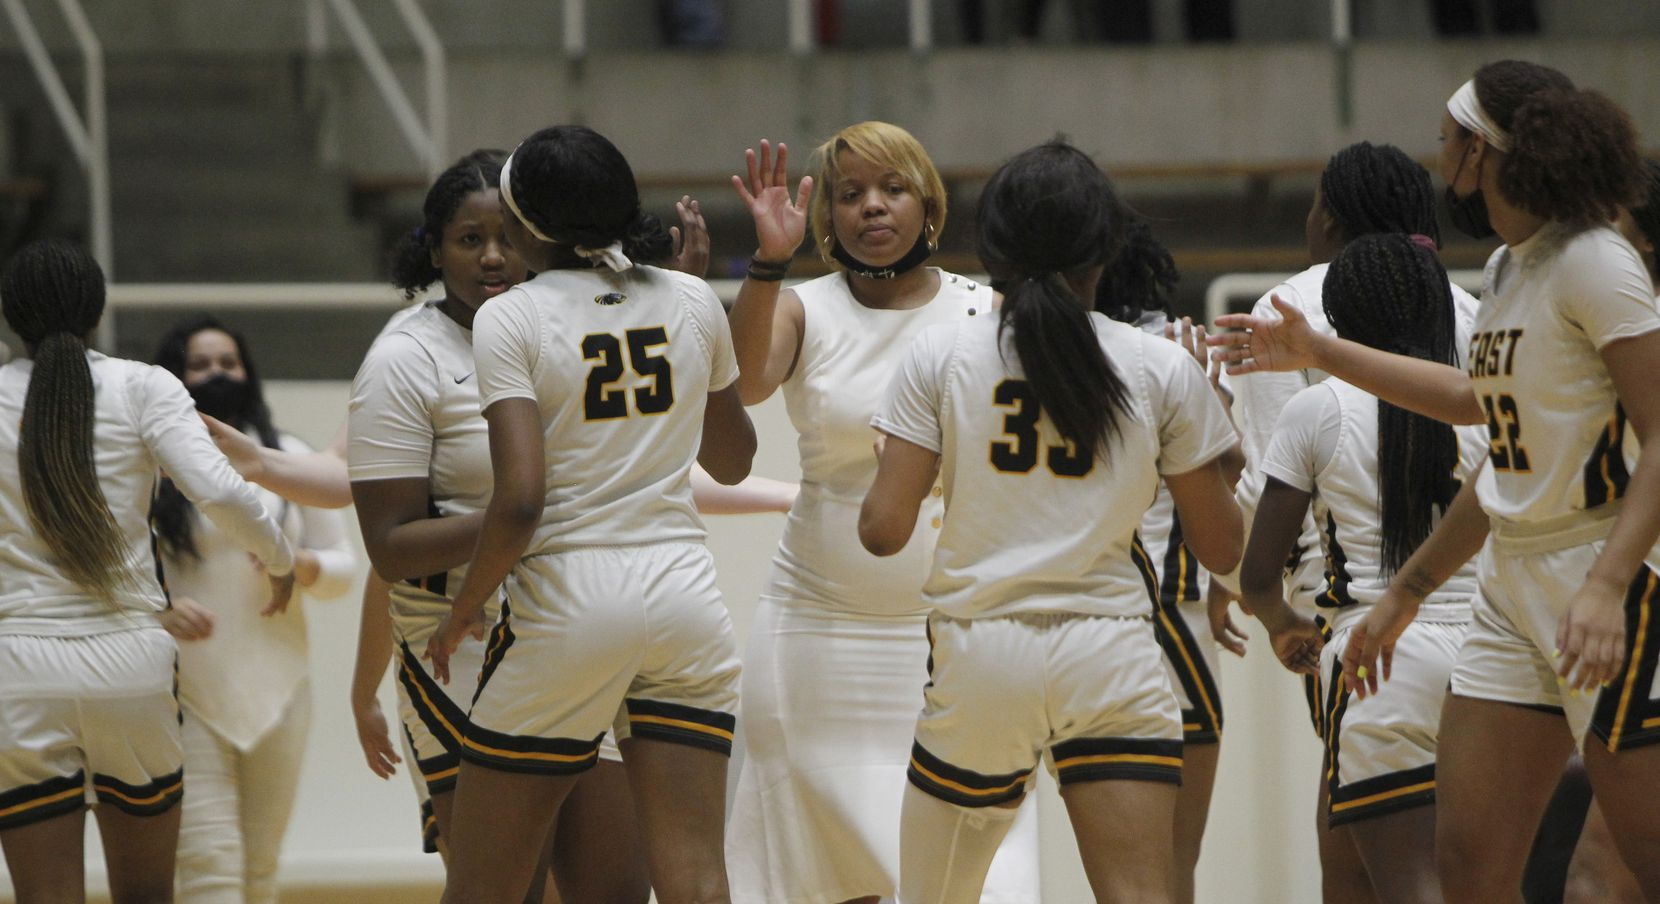 Plano East head coach Jessica Linson, center, welcomes her players to the bench area during a first half timeout in their game against Southlake Carroll. The two teams played their Class 6A regional semifinal girls playoff basketball game at Loos Field House in Addison on February 27, 2021. (Steve Hamm/ Special Contributor)